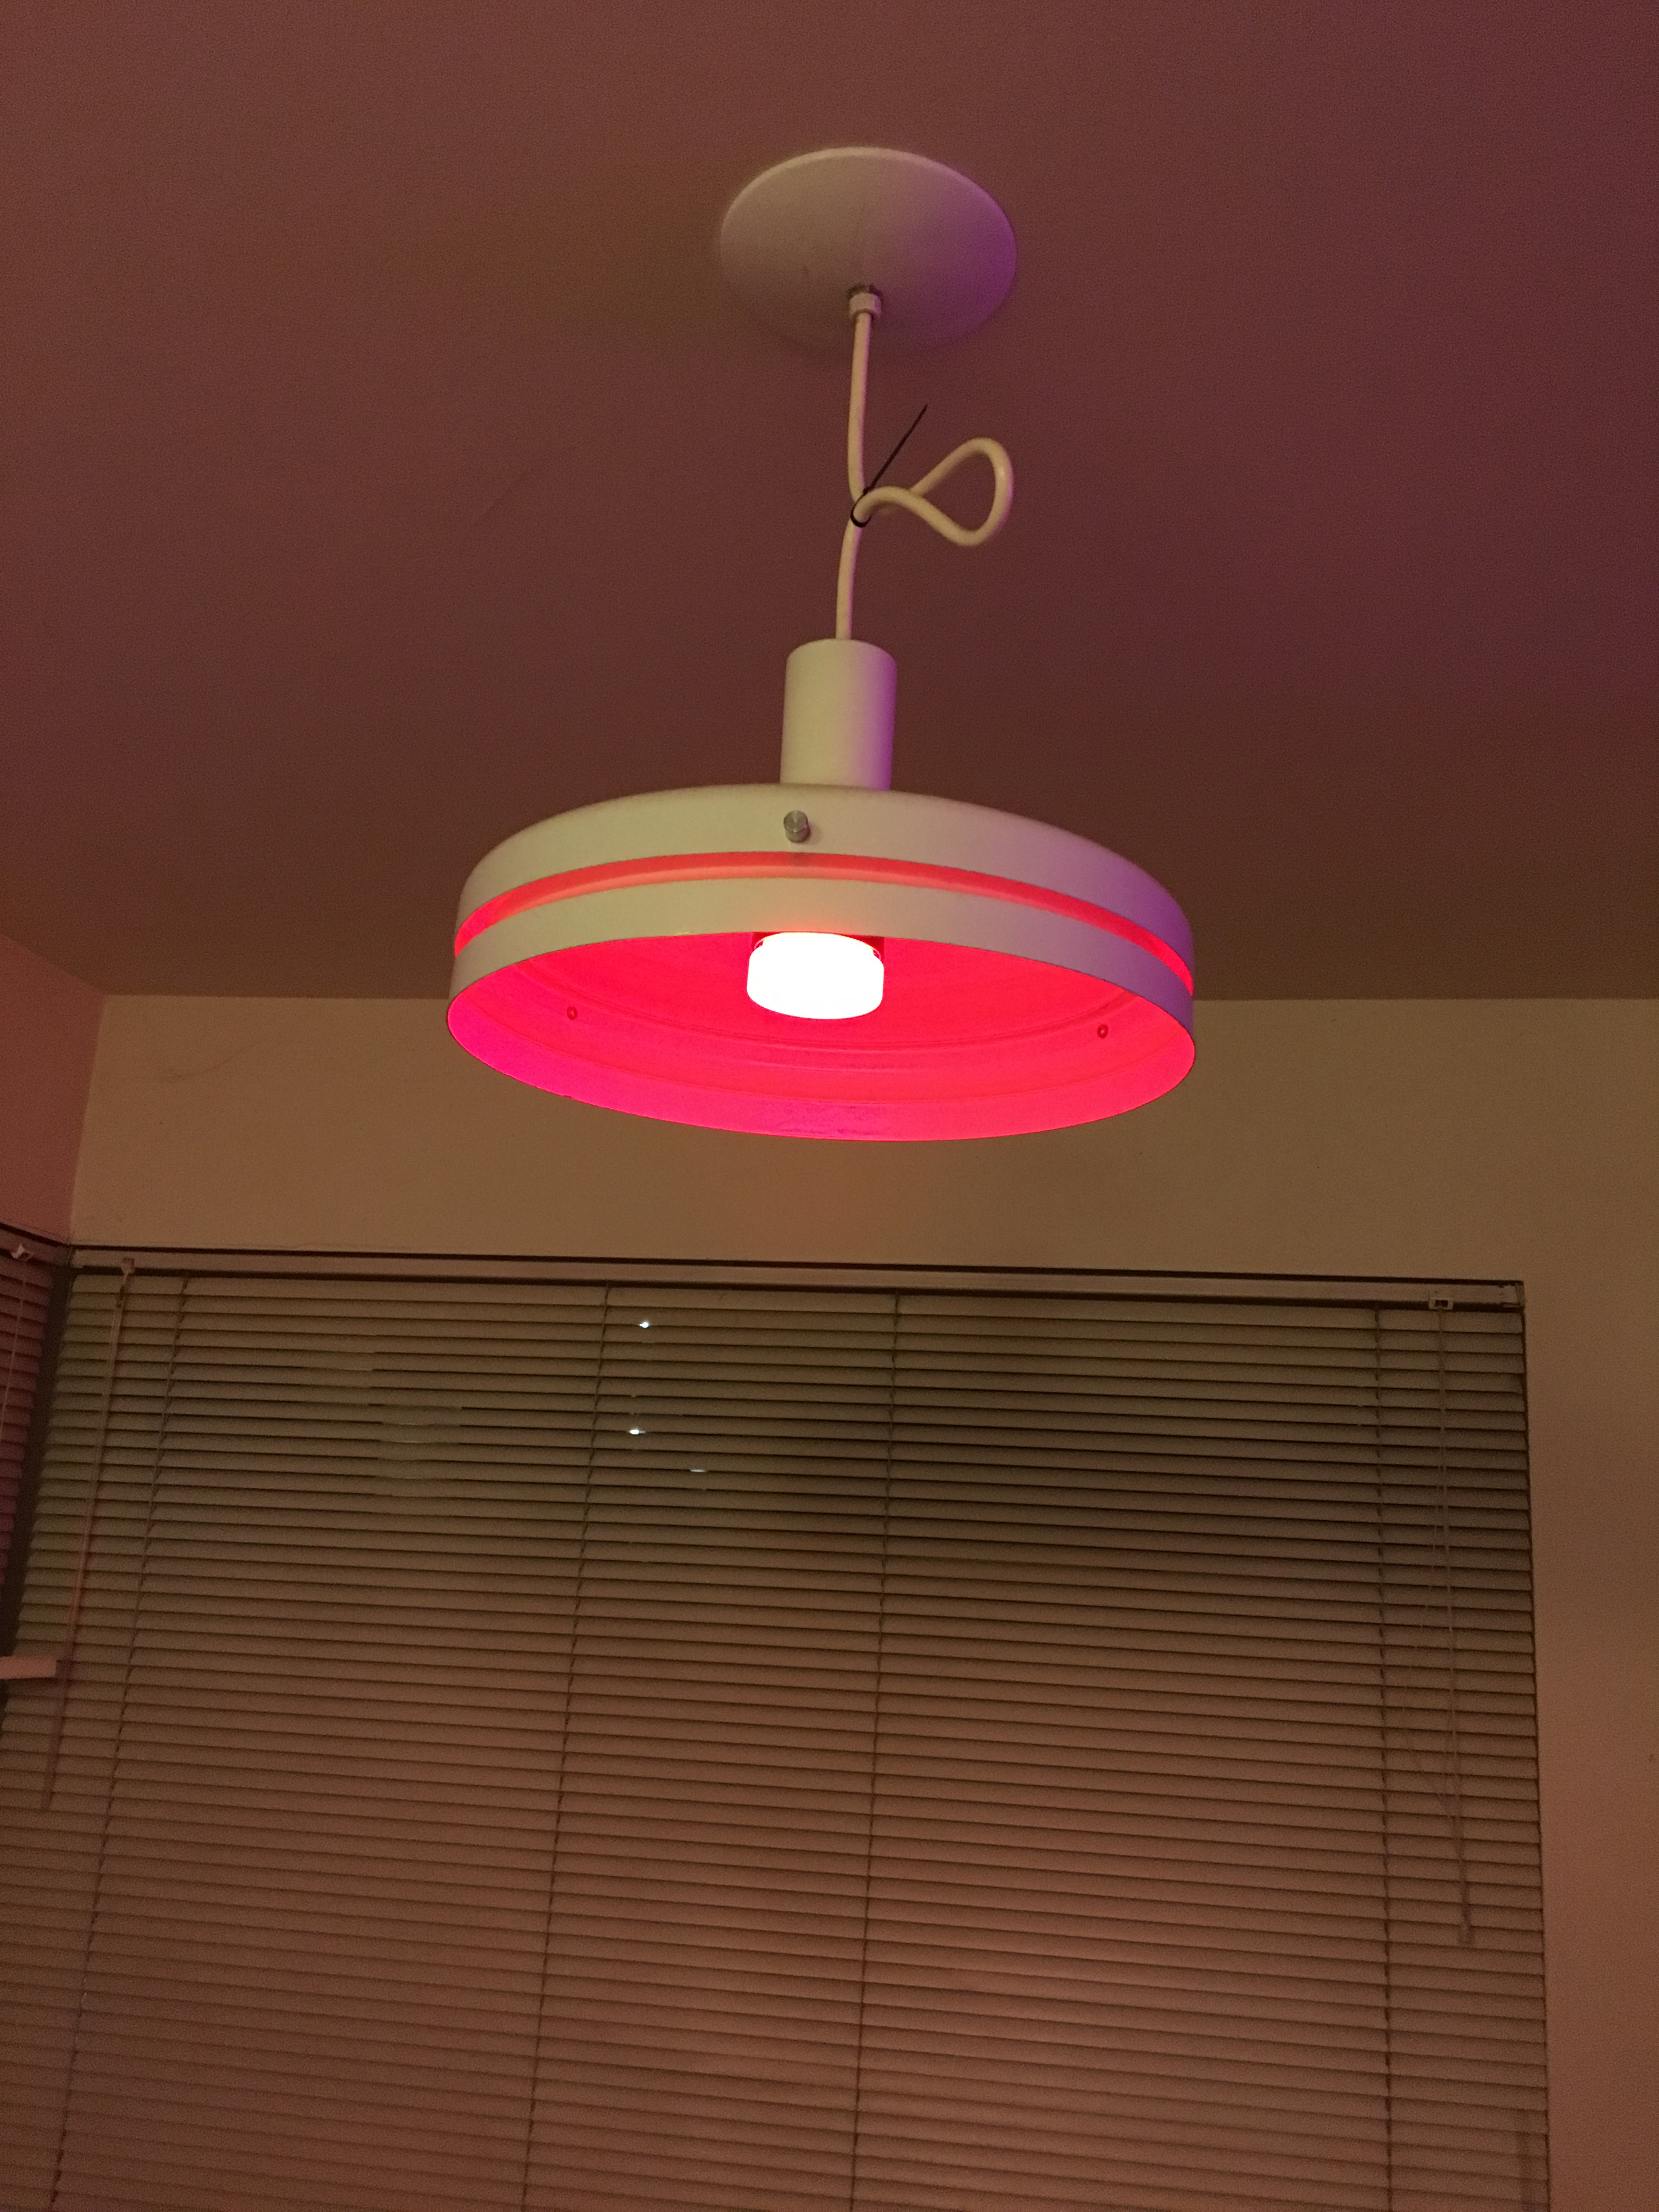 Where Are Your Lifx I Have One In An Ikea Lamp Lifx